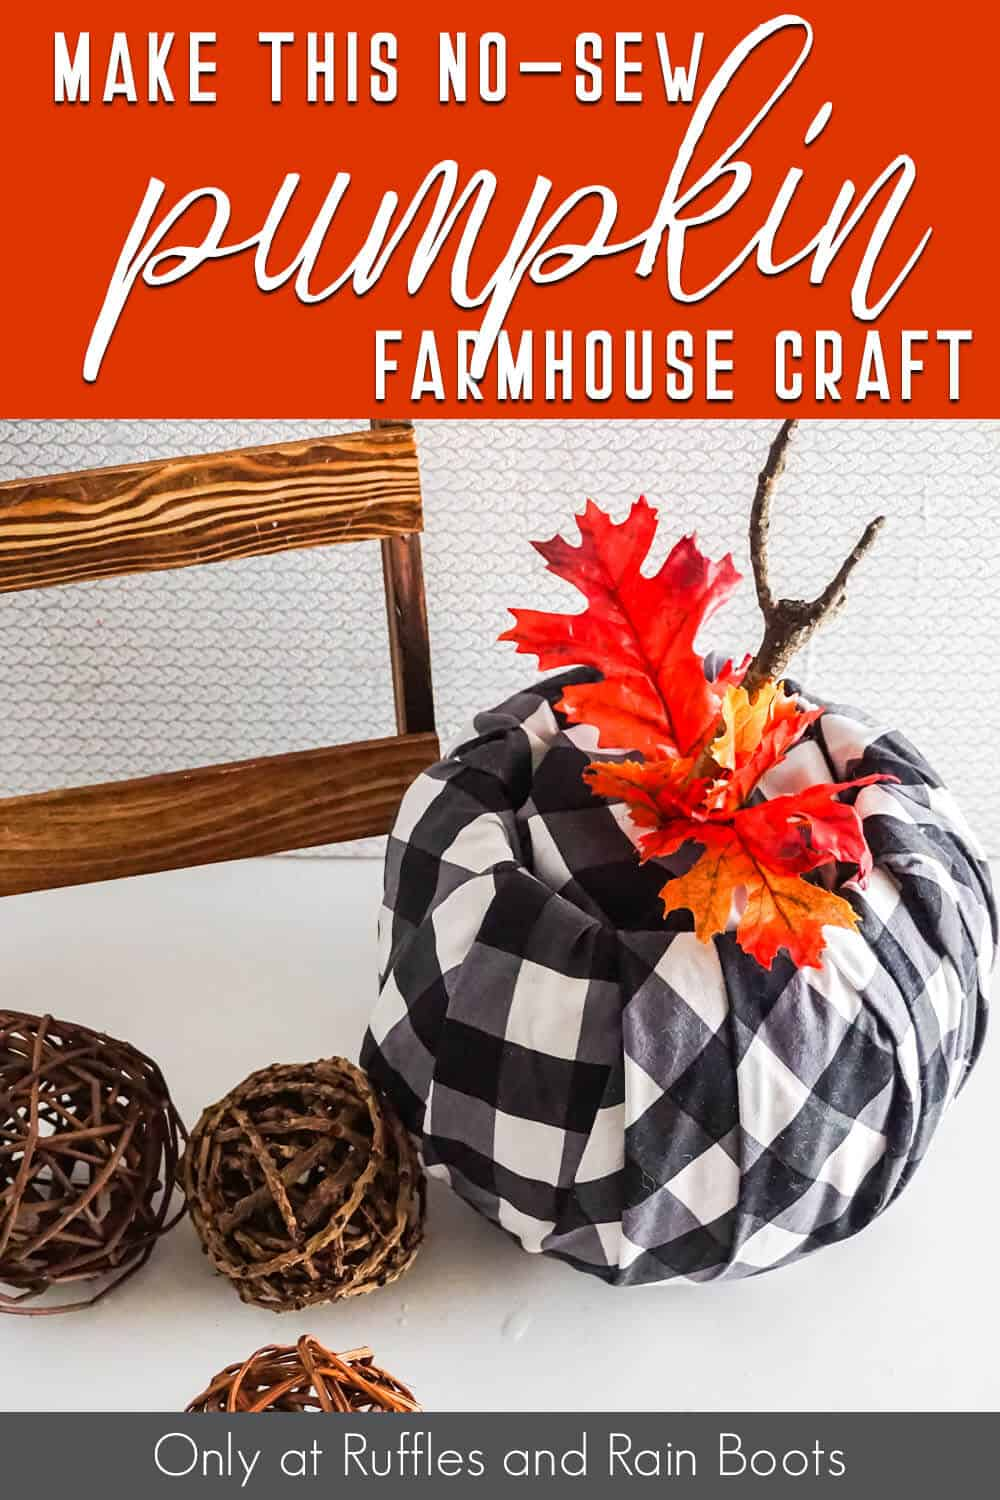 easy fabric pumpkin craft with text which reads make this no-sew pumpkin farmhouse craft